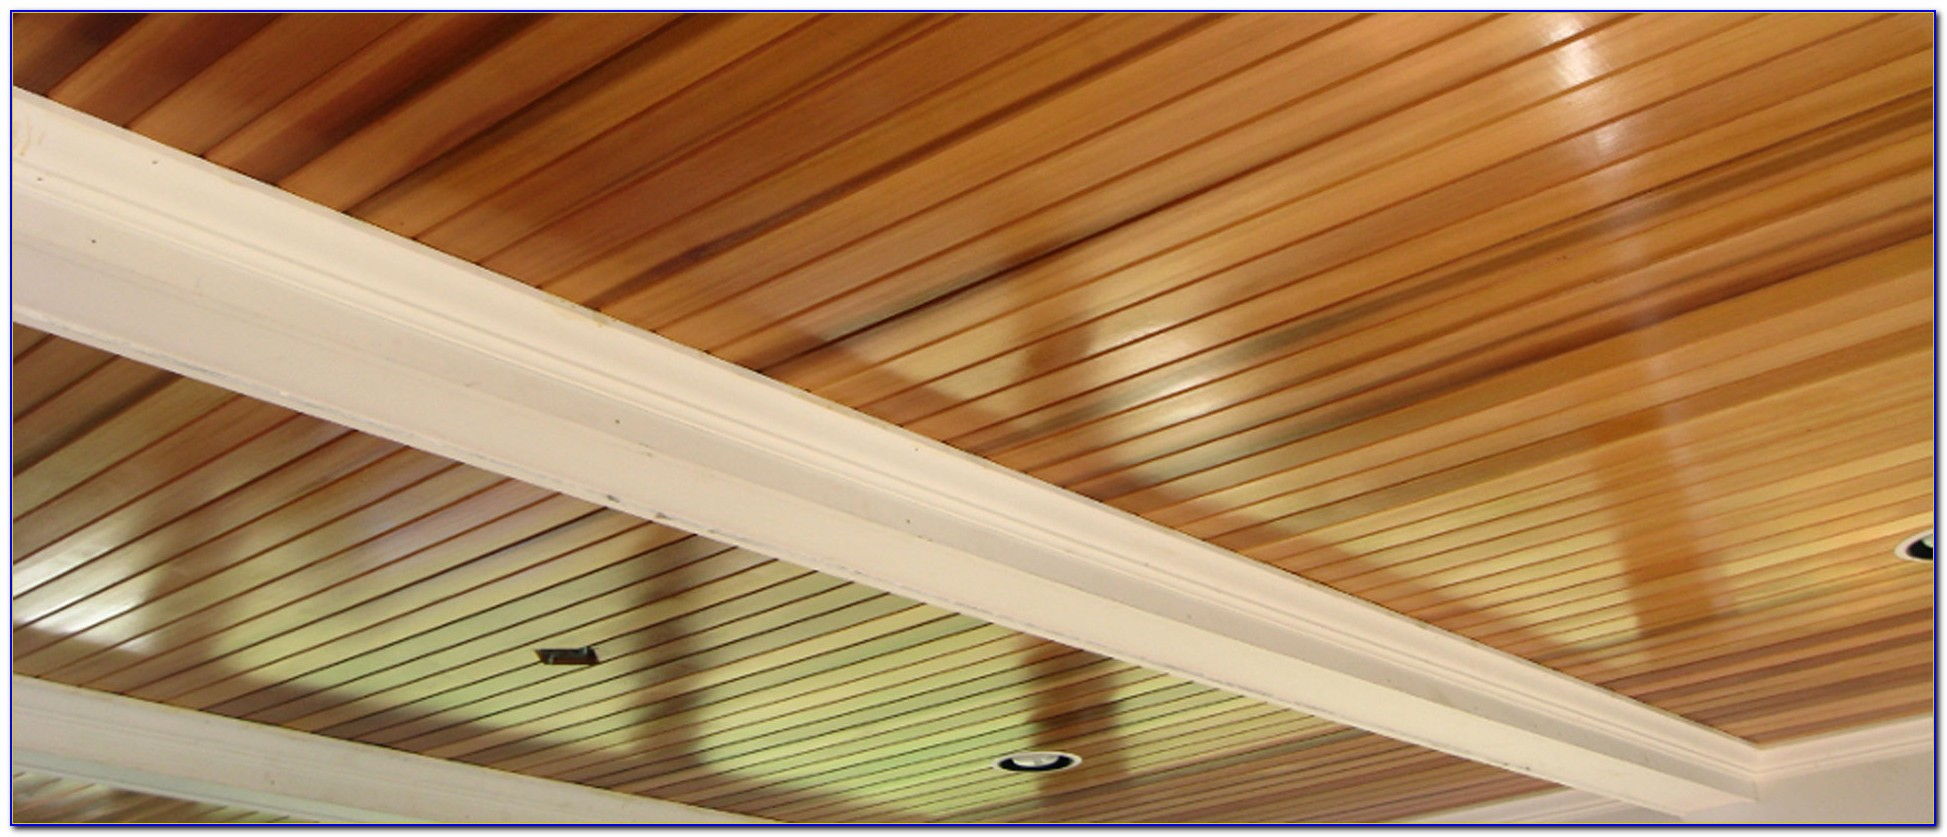 Pvc Tongue And Groove Ceiling Panels Shelly Lighting